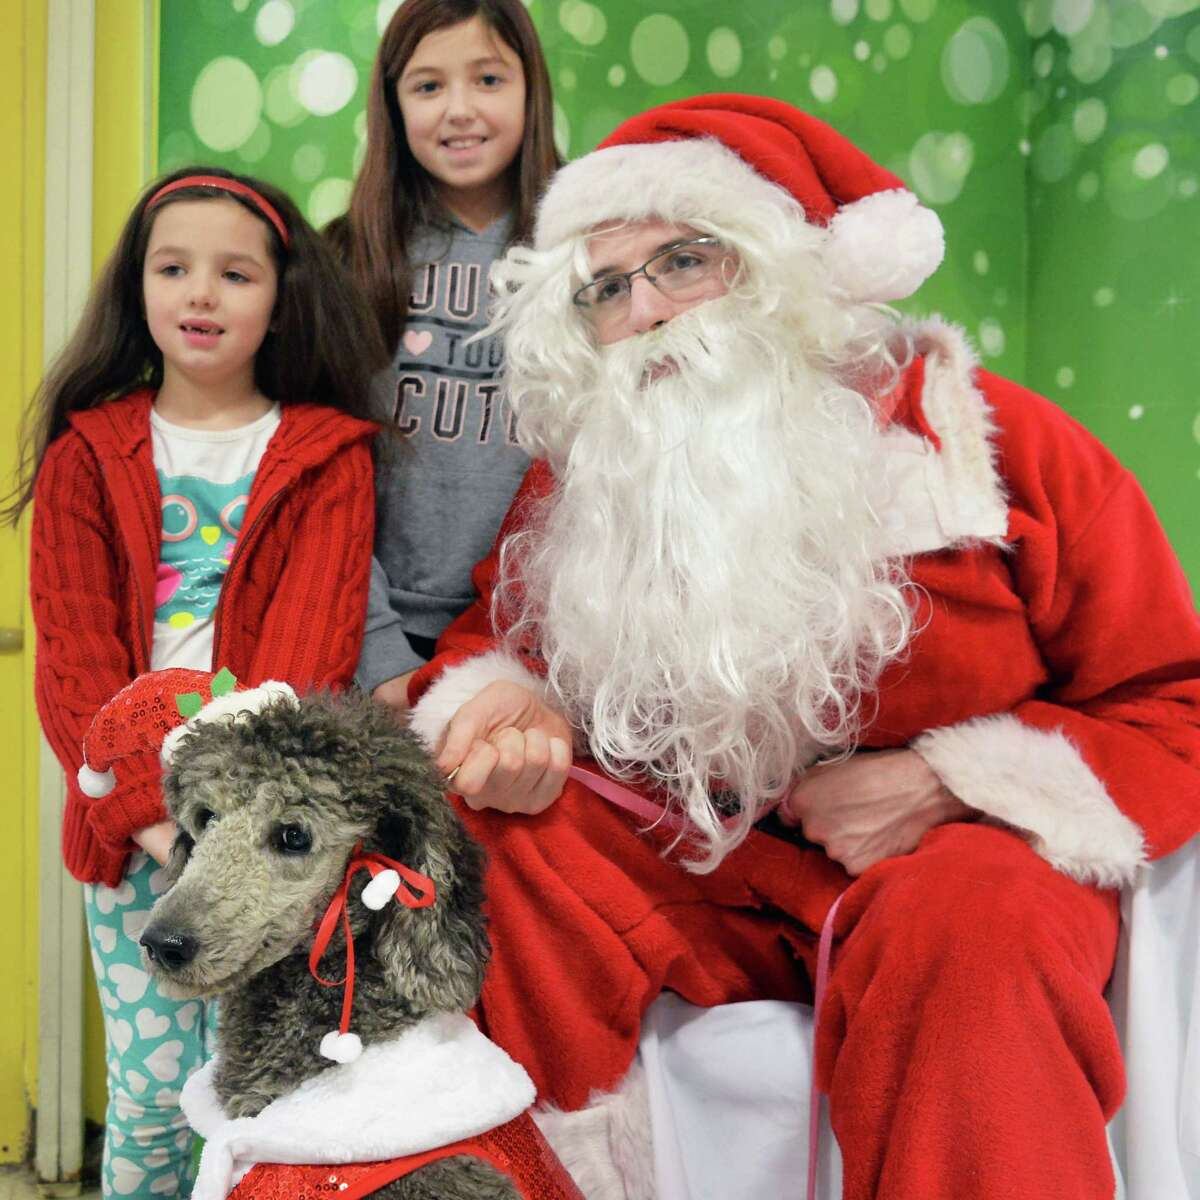 Talia, 6, left, and her sister Sage Rysedorph, 11, of Colonie pose with their Grandmother's poodleTori for a photo with Santa at Petco Saturday Dec. 12, 2015 in Colonie, NY. (John Carl D'Annibale / Times Union)